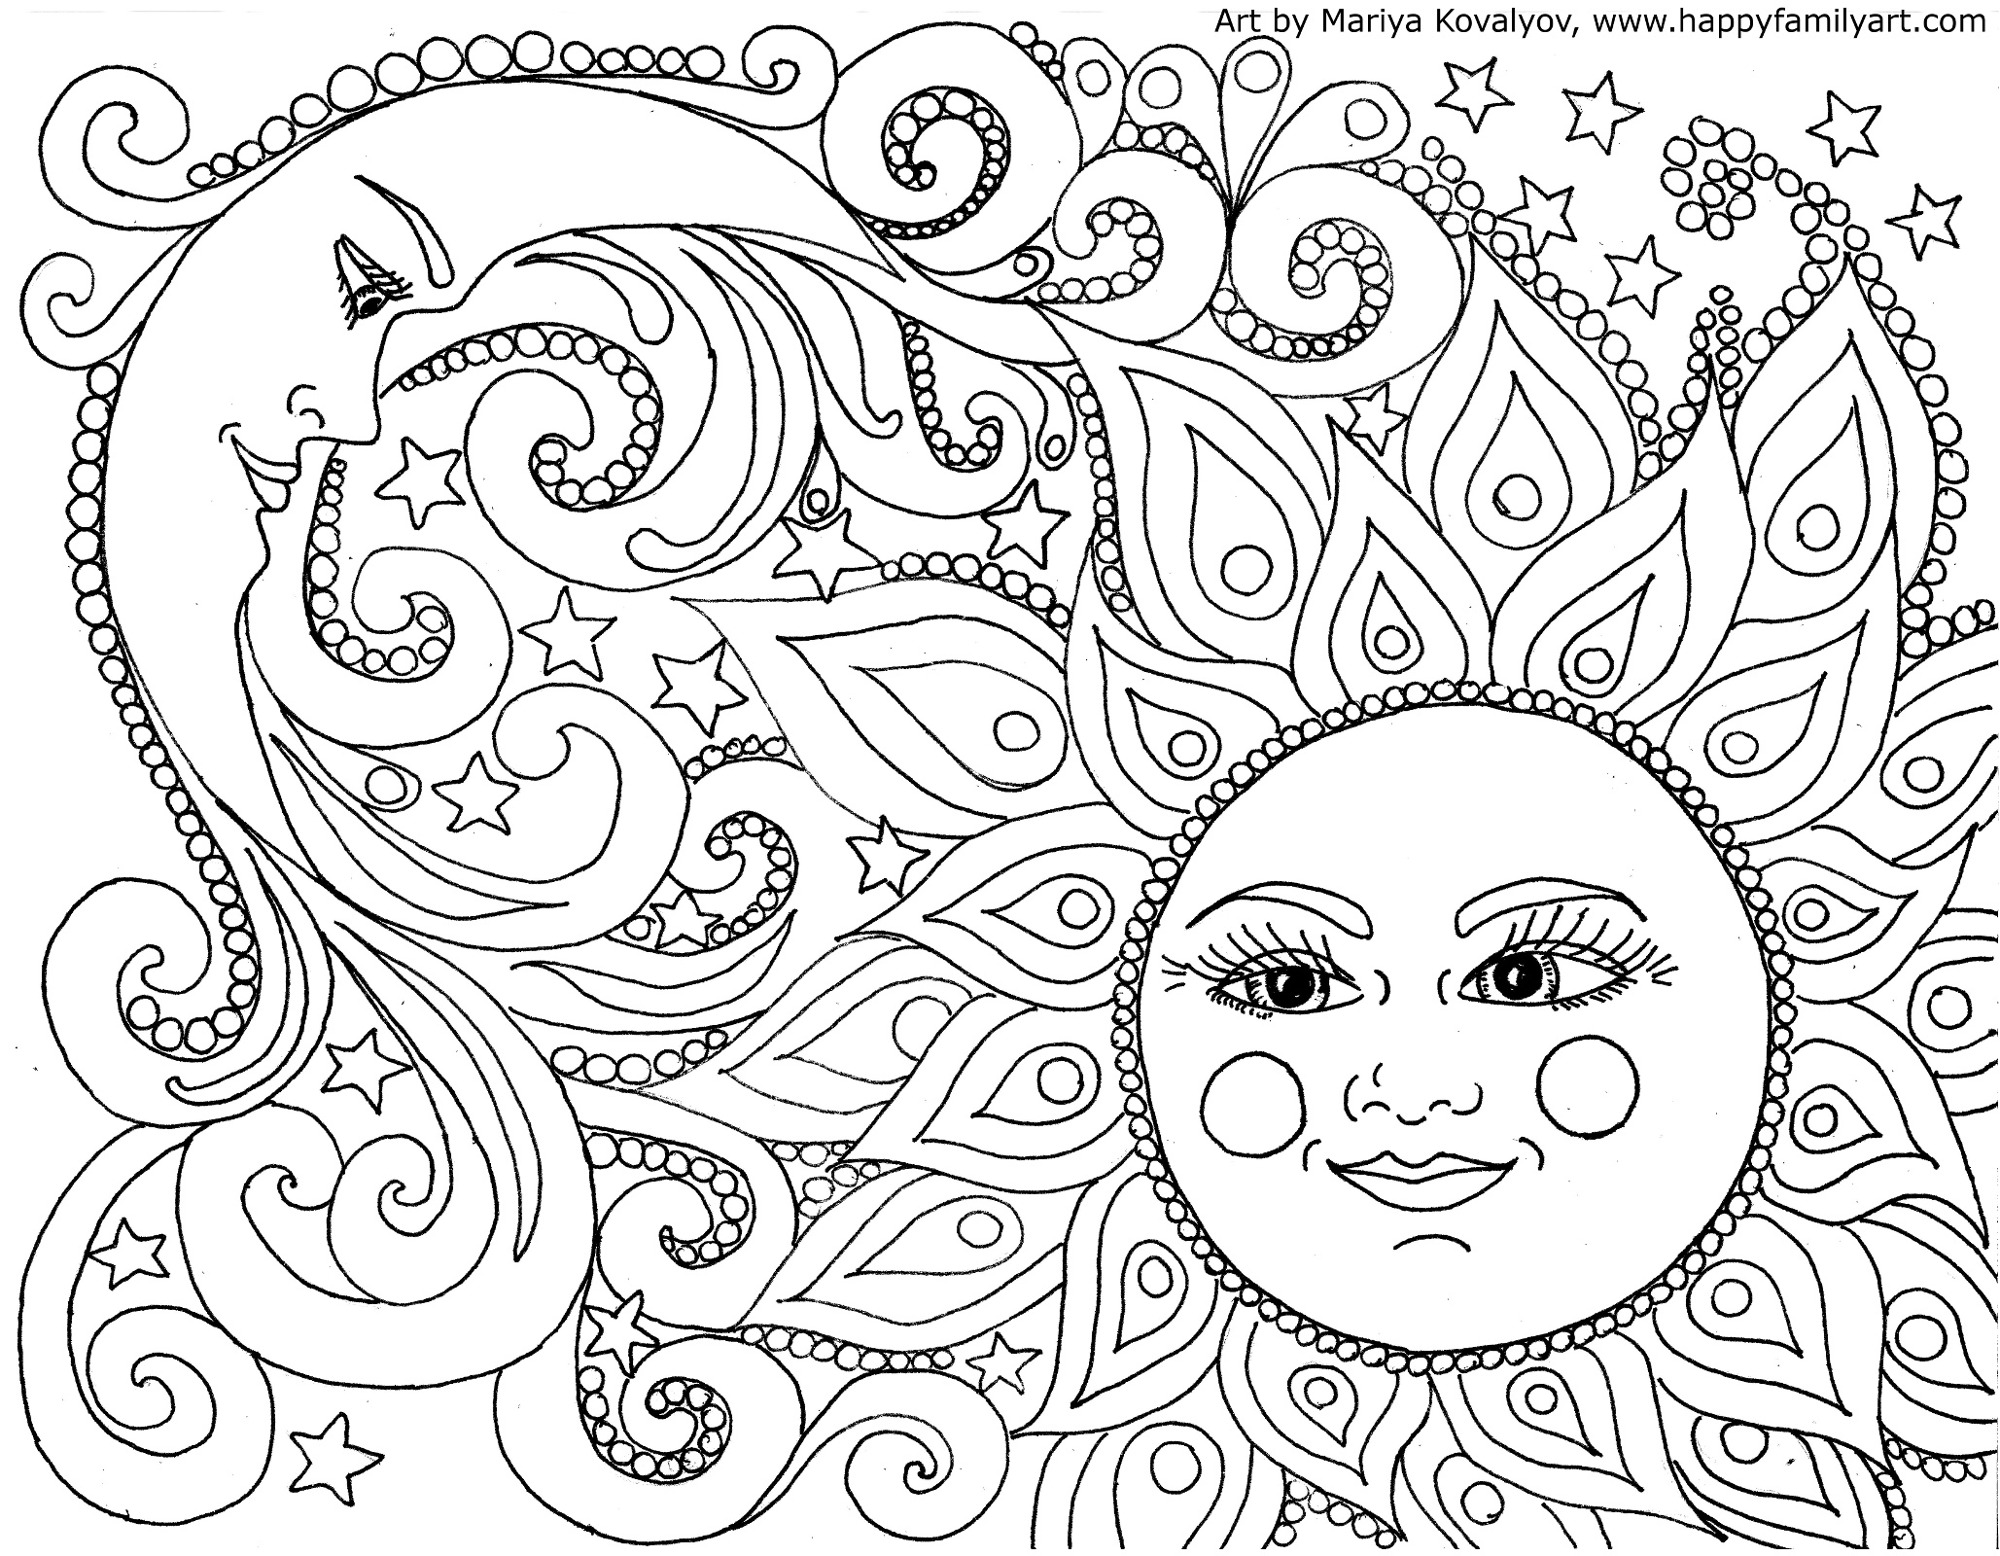 Happy Family Art Original And Fun Coloring Pages Colouring Pages